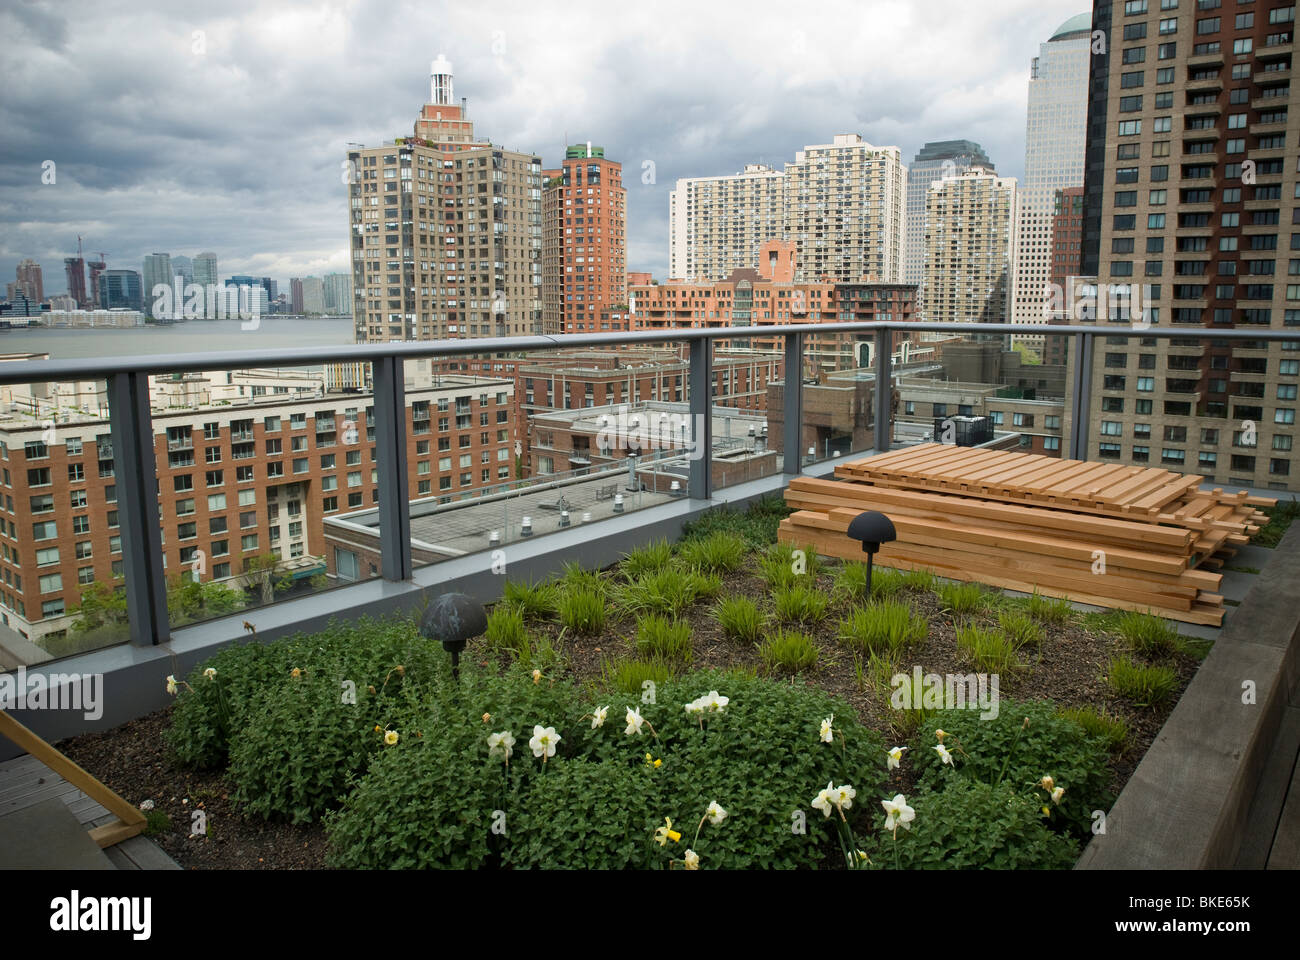 Captivating A Green Roof On The Visionaire, A Green Condominium In Battery Park City In New  York